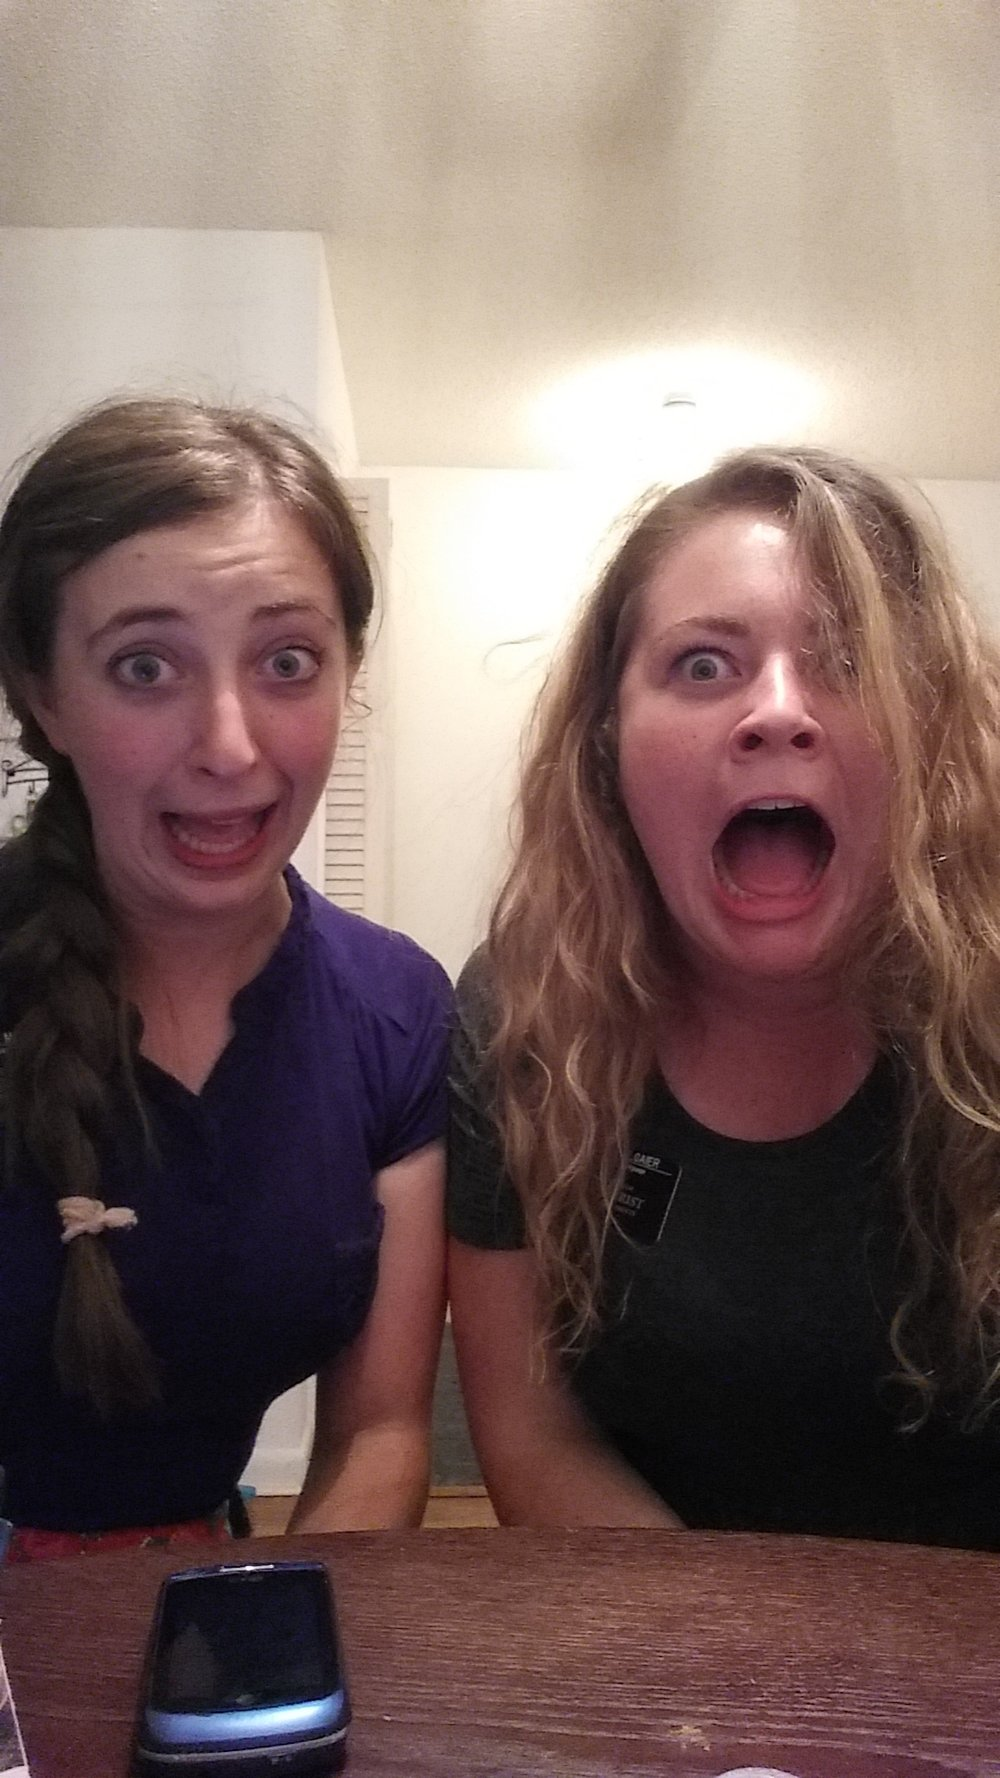 Here's this super attractive one during our conference call where we found out we were being evacuated